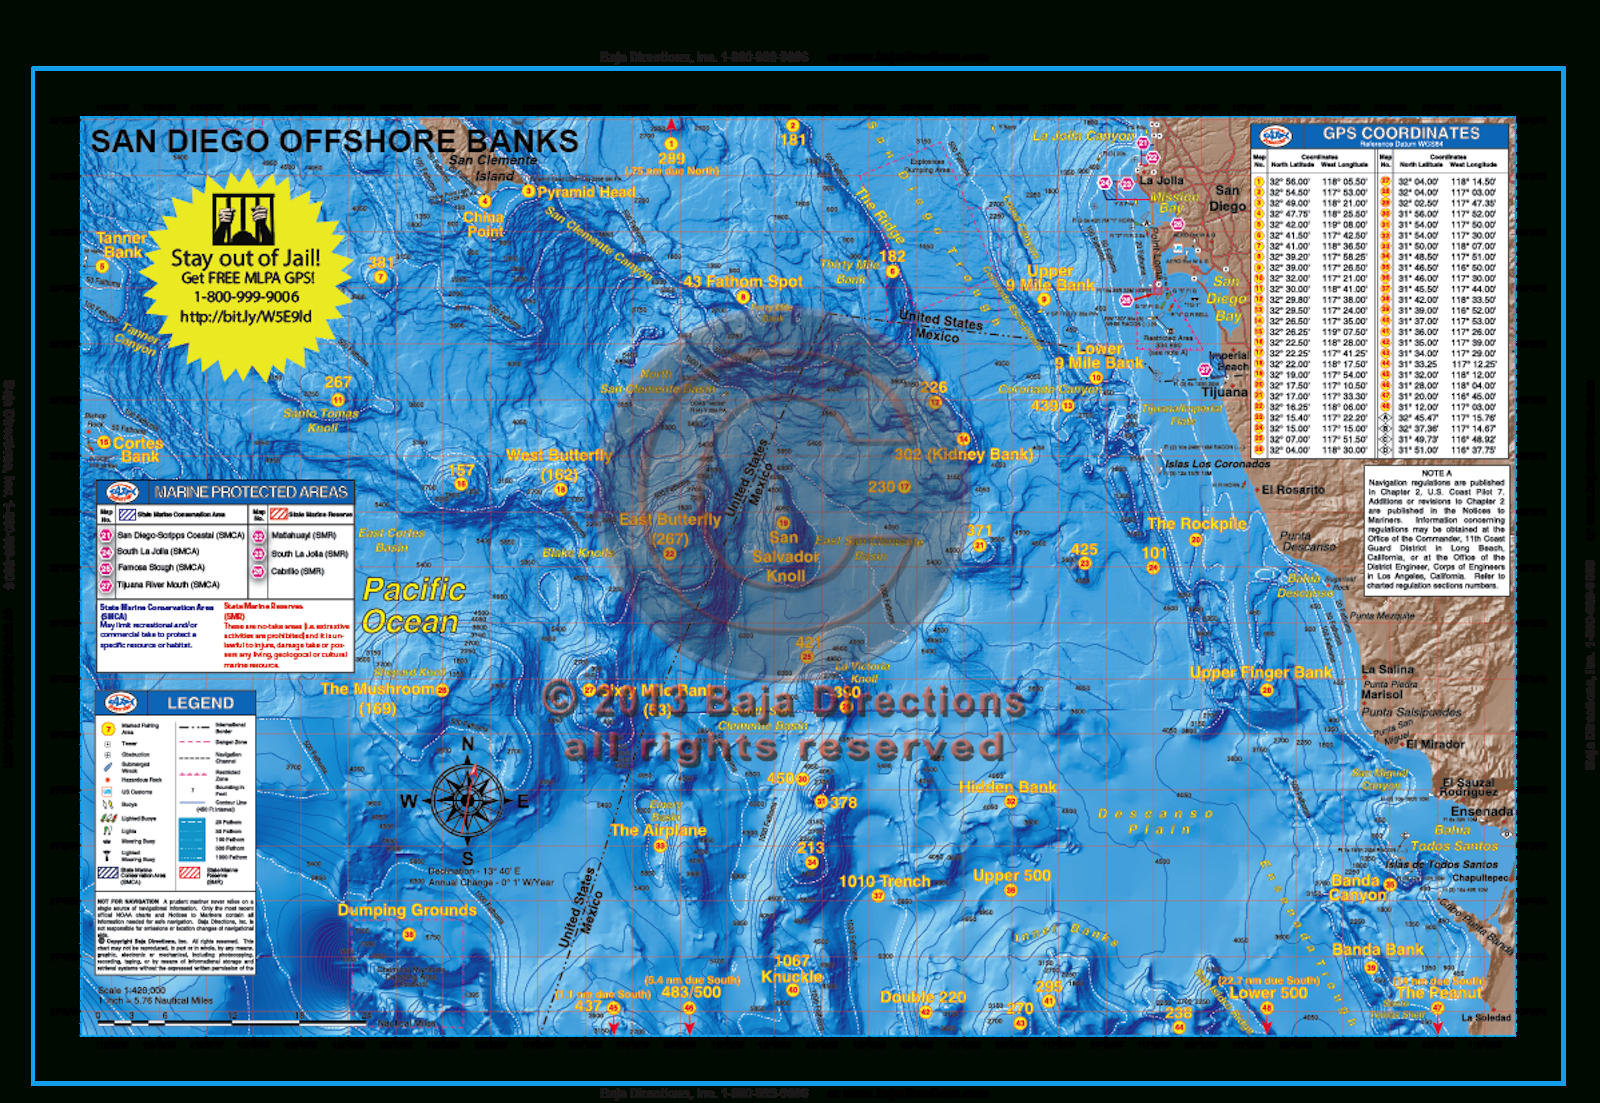 San Diego Offshore Banks - Baja Directions - Southern California Ocean Fishing Maps